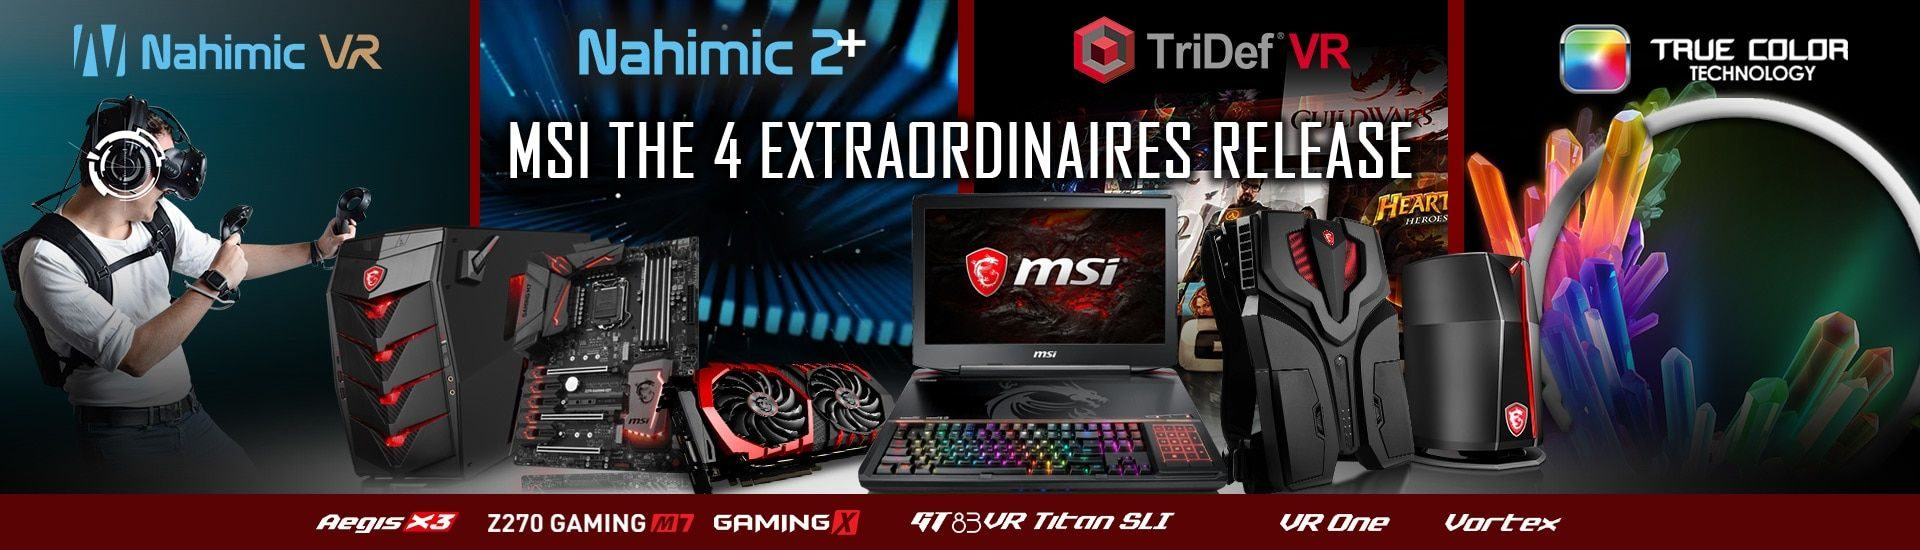 MSI VR Software TriDef VR, Nahimic VR and Nahimic 2 + To Enhance The Virtual Experience